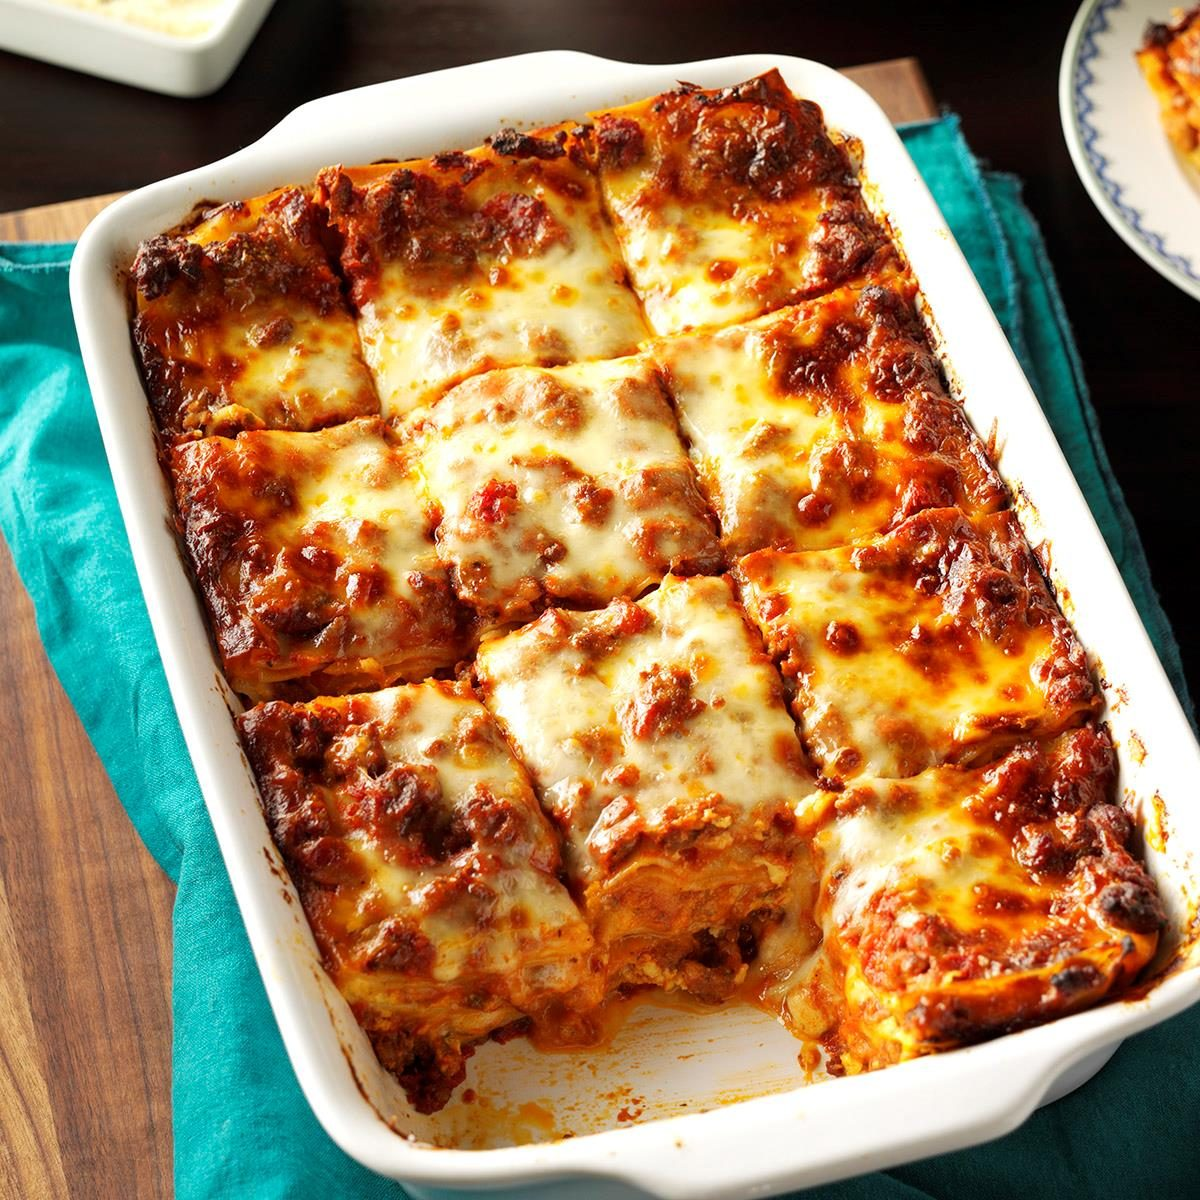 Her Majesty, lasagna is a recipe for cooking